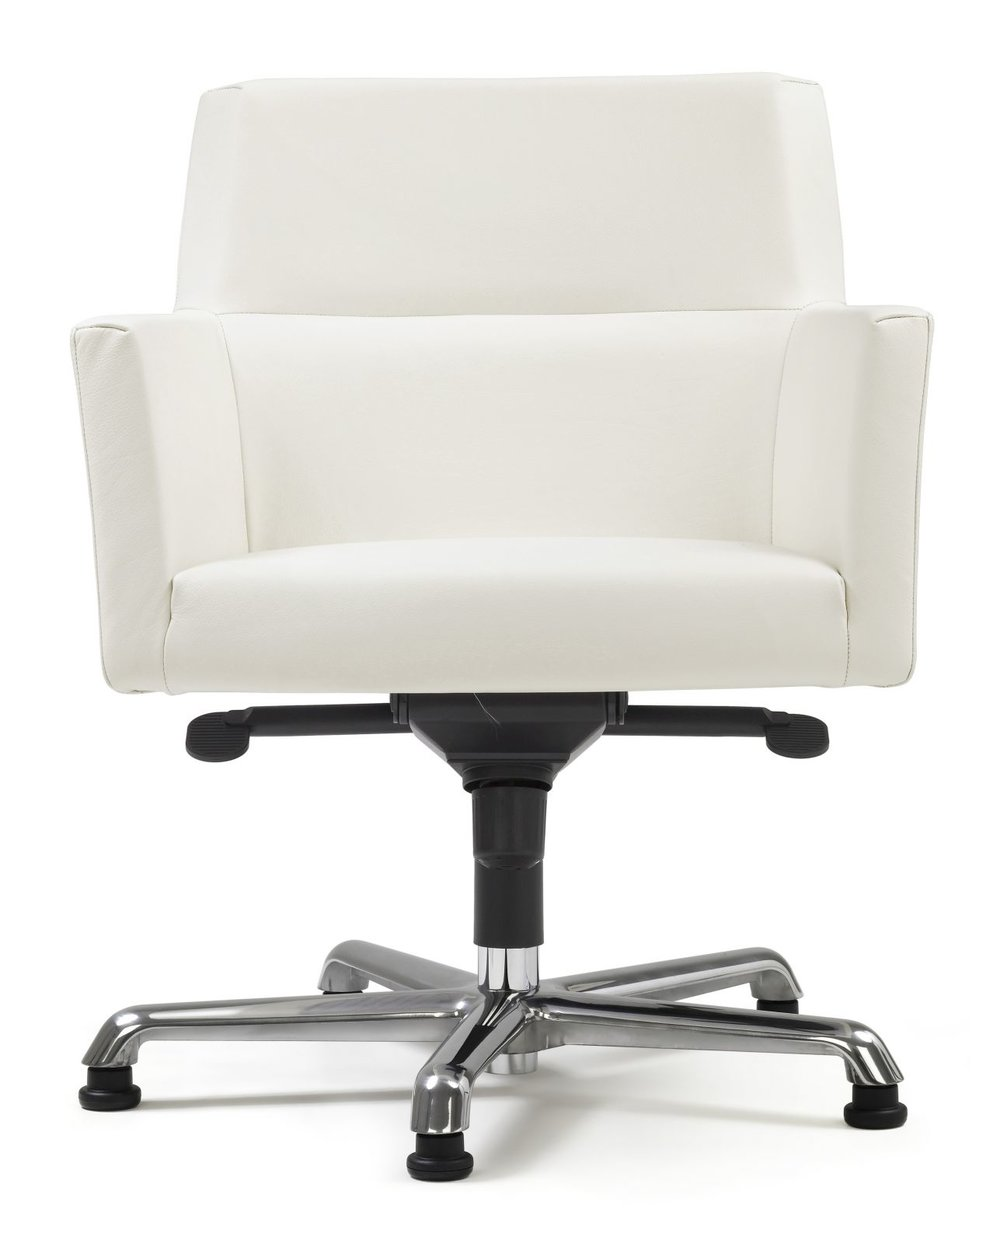 modern-office-chairs-Italian-furniture-designer-chairs (11).jpg